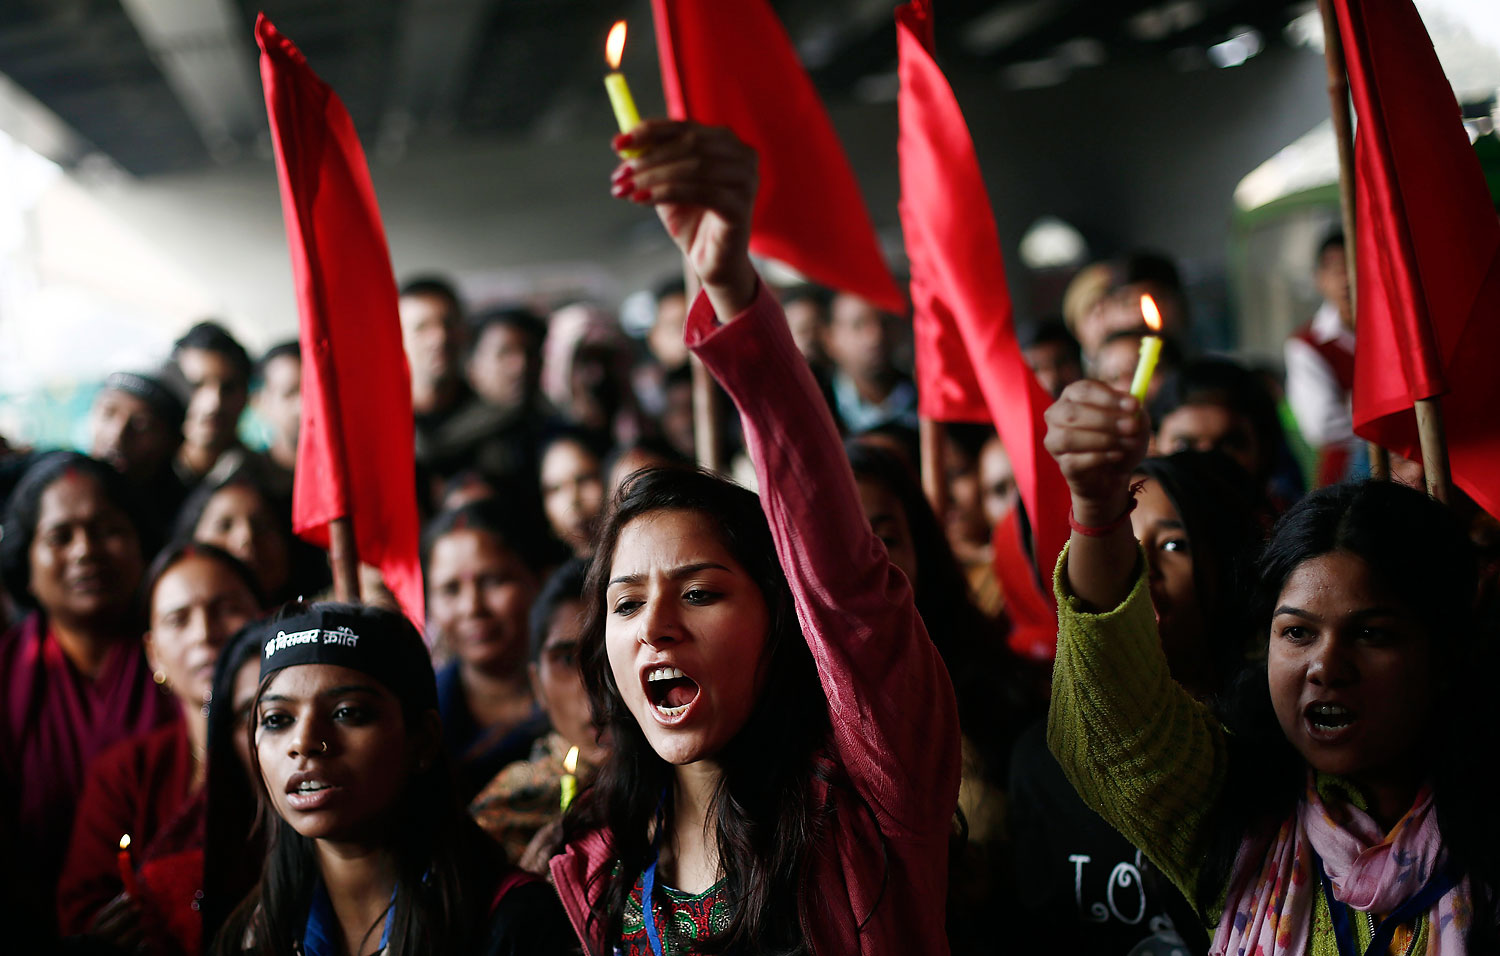 Protesters carry candles as they shout slogans during a protest to mark the first anniversary of the Delhi gang rape, in New Delhi Dec. 16, 2013.